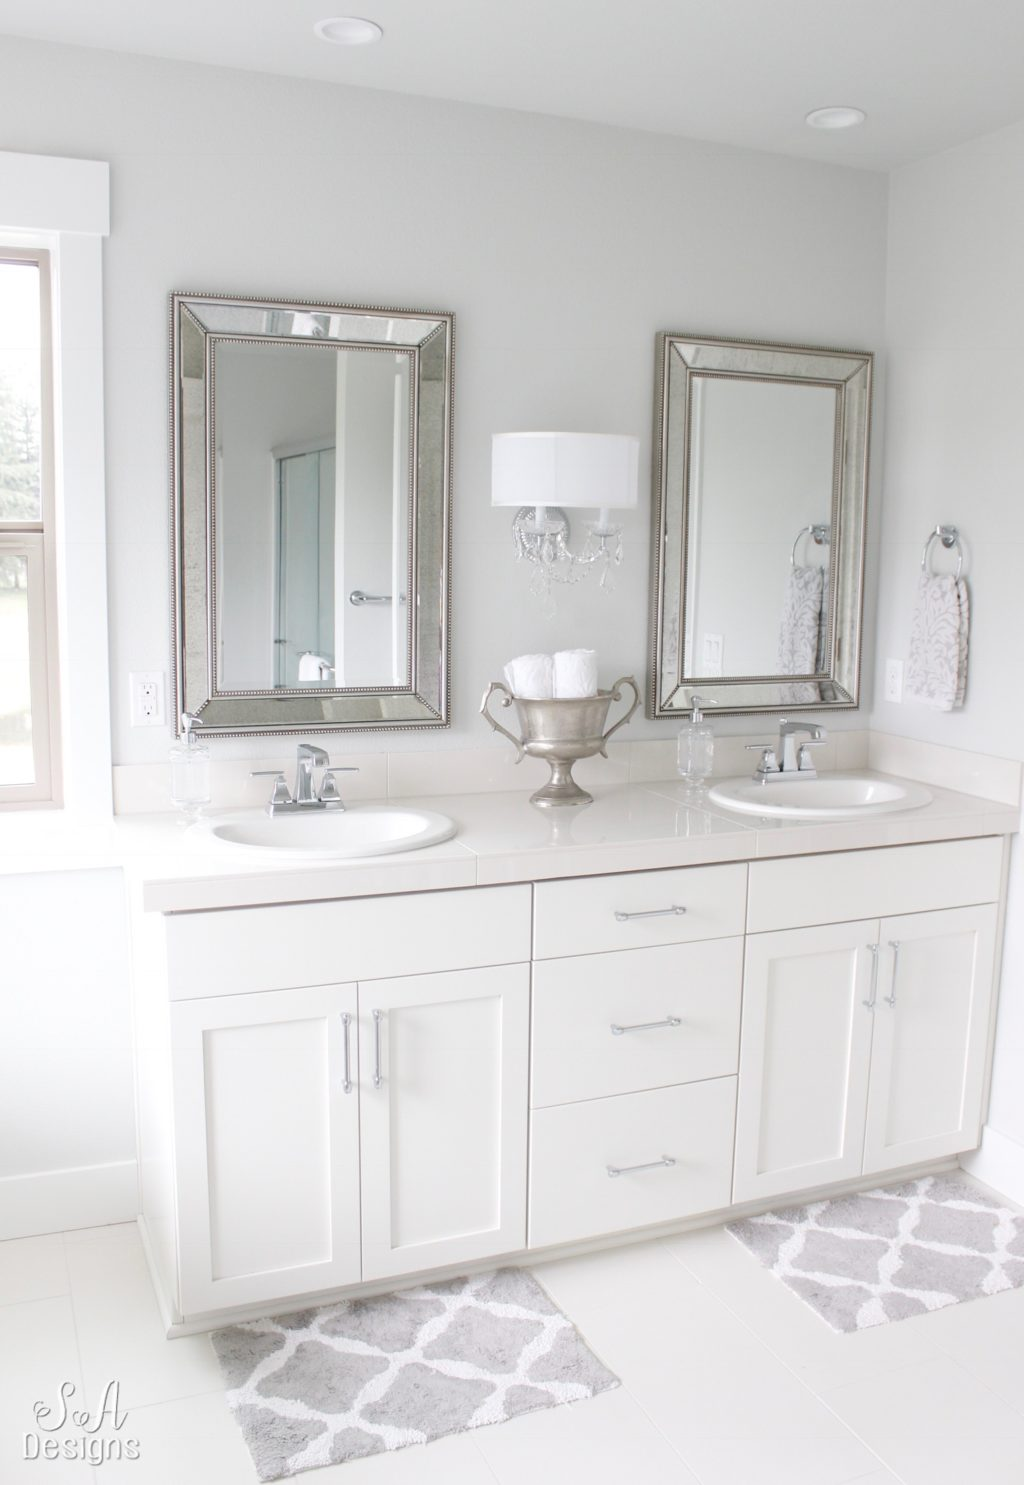 For my entire post on our Master Bathroom, please click HERE.